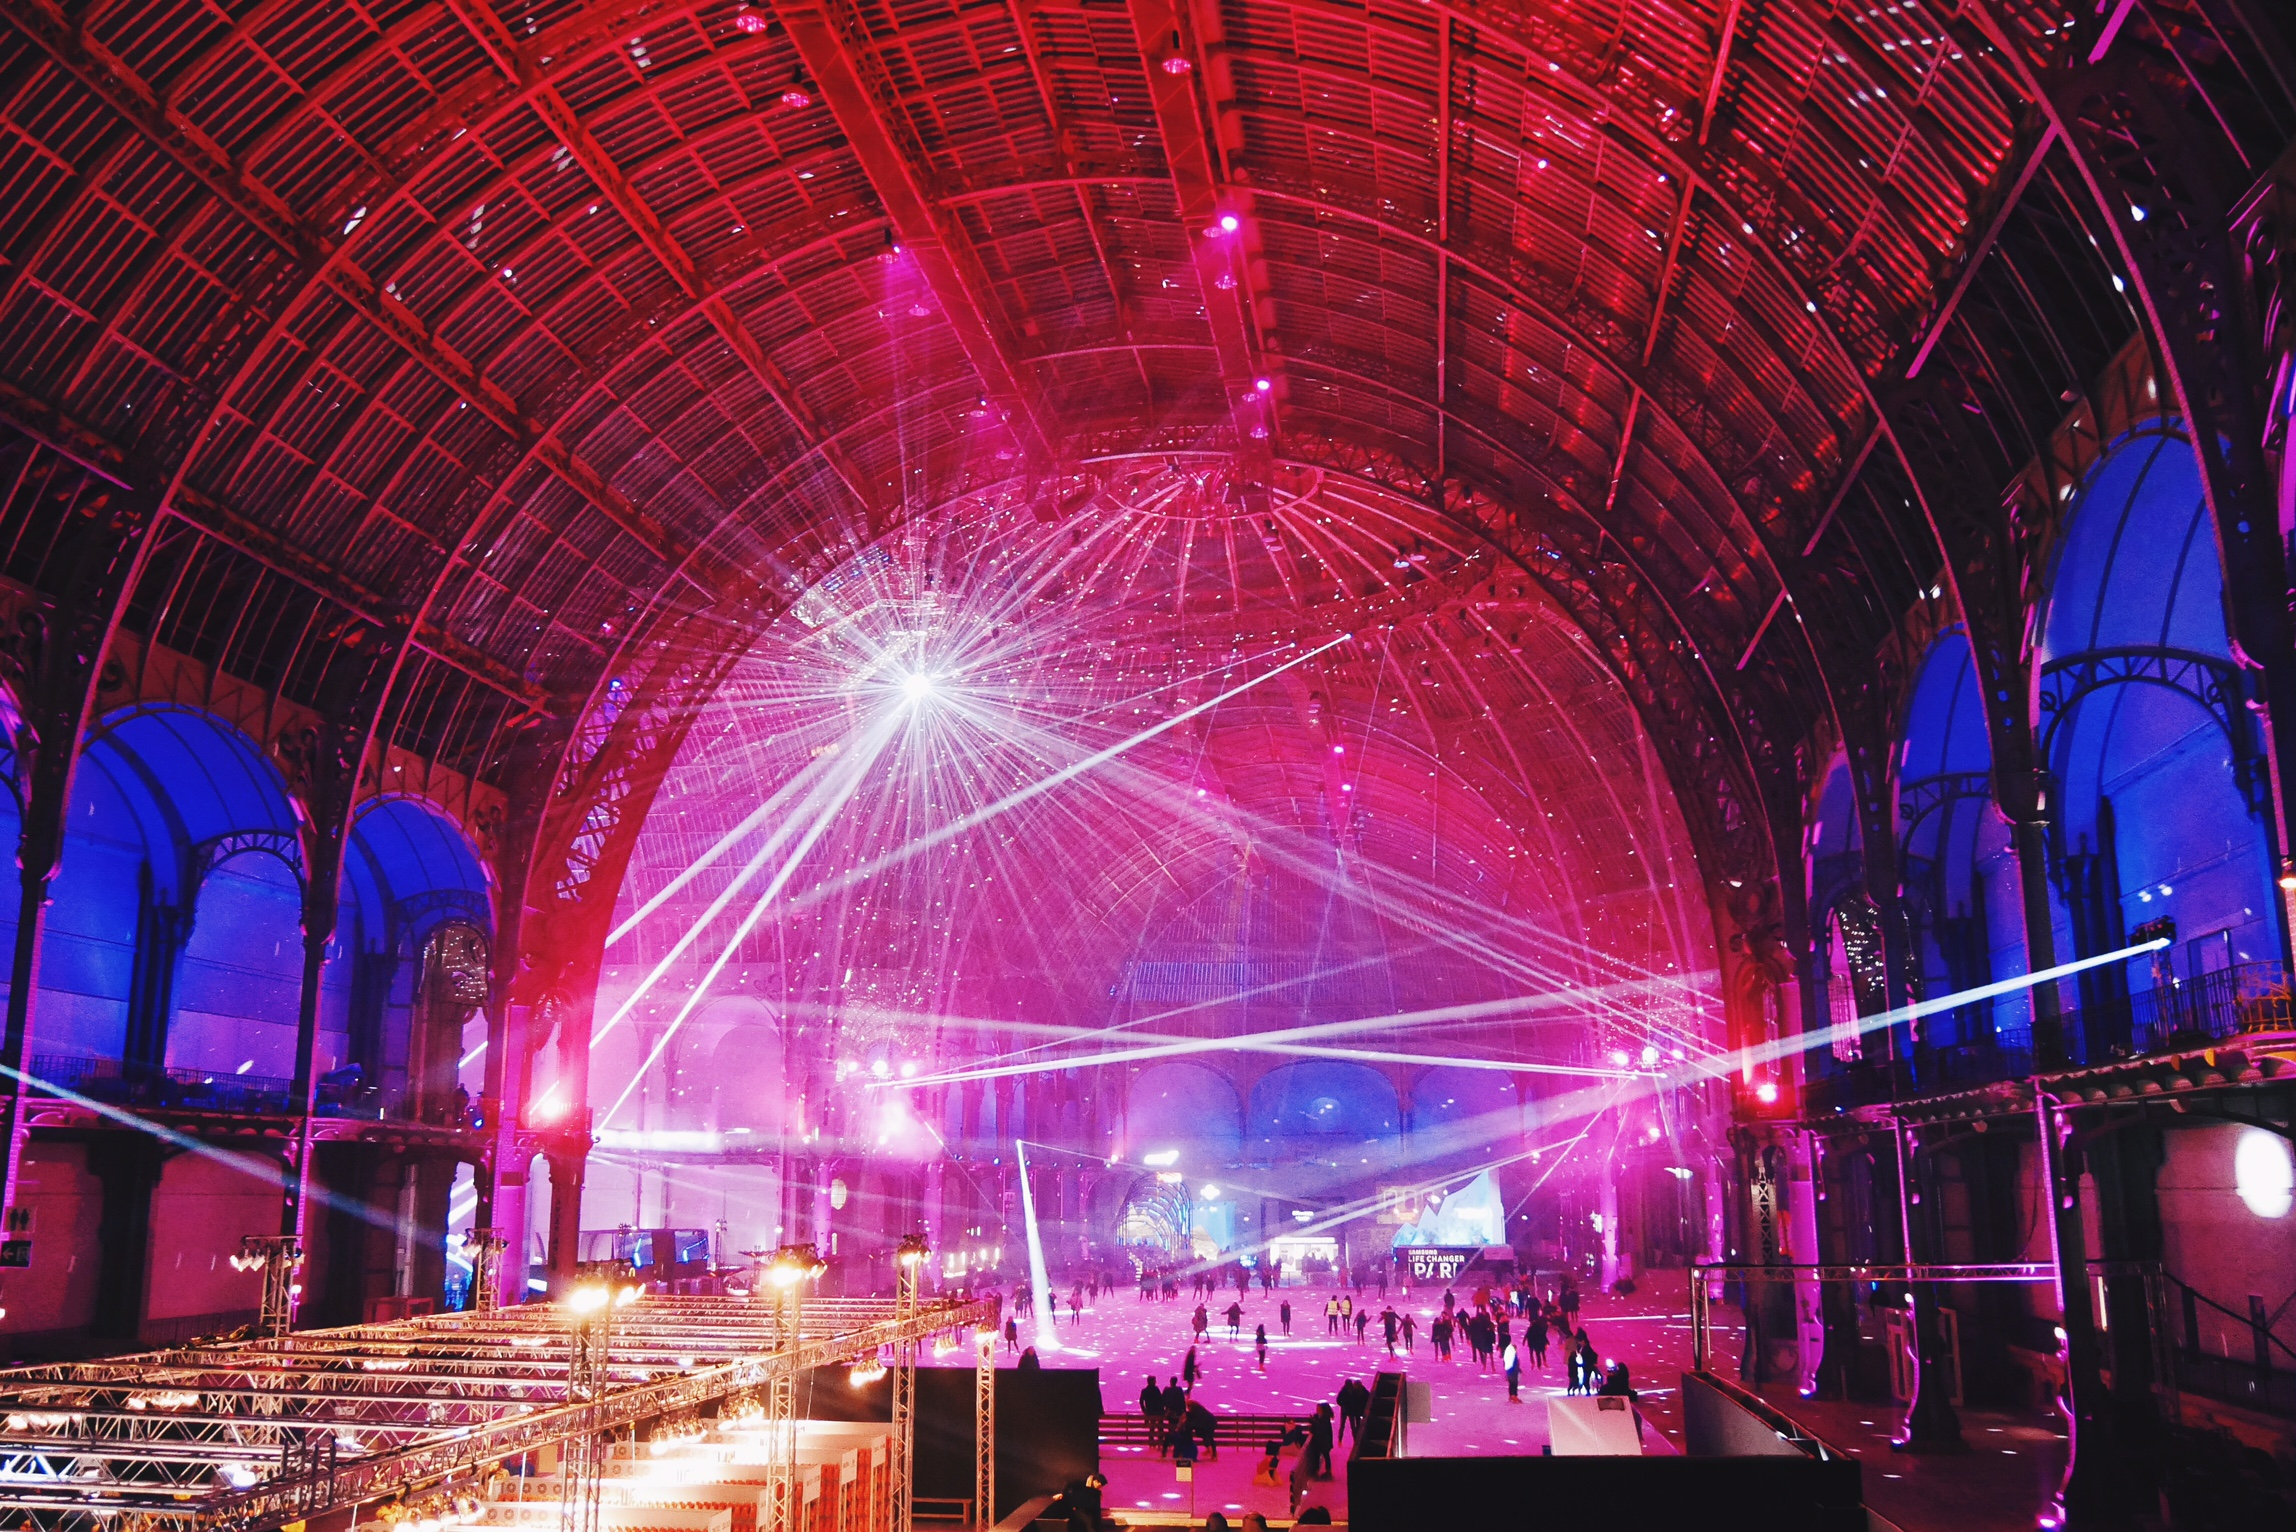 Grand-Palais-des-Glaces-Paris-nef-de-nuit-plus-grande-patinoire-indoor-du-monde-Samsung-Life-Changer-Park-réalité-virtuelle-Gear-VR-photo-usofparis-blog.jpg